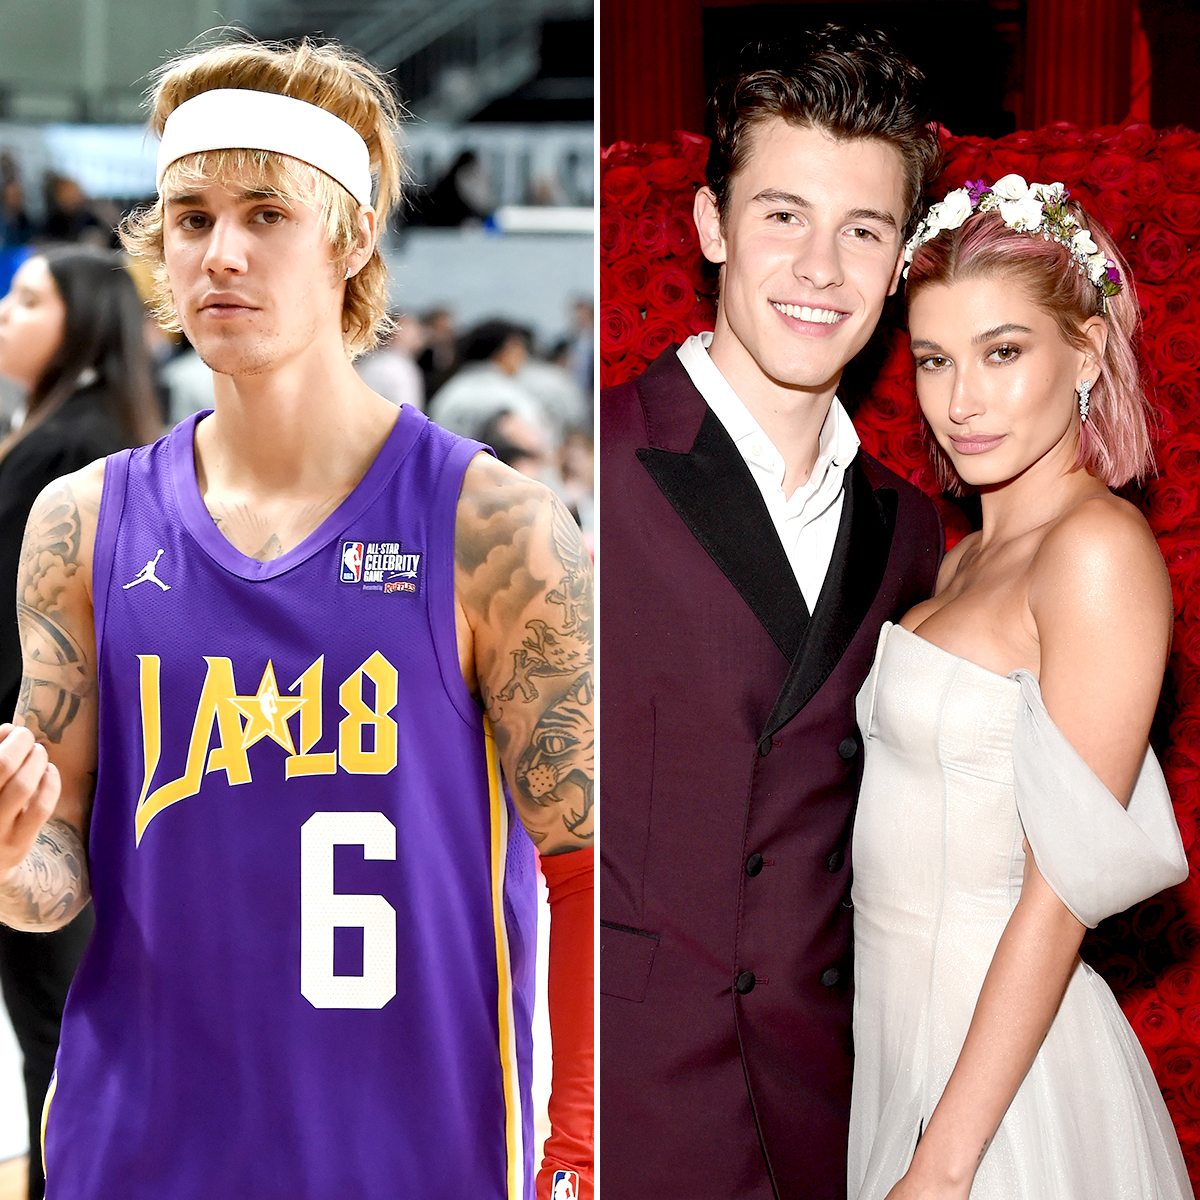 Justin-Bieber-Reacts-to-Shawn-Mendes-'Liking'-a-Photo-of-Hailey-Baldwin